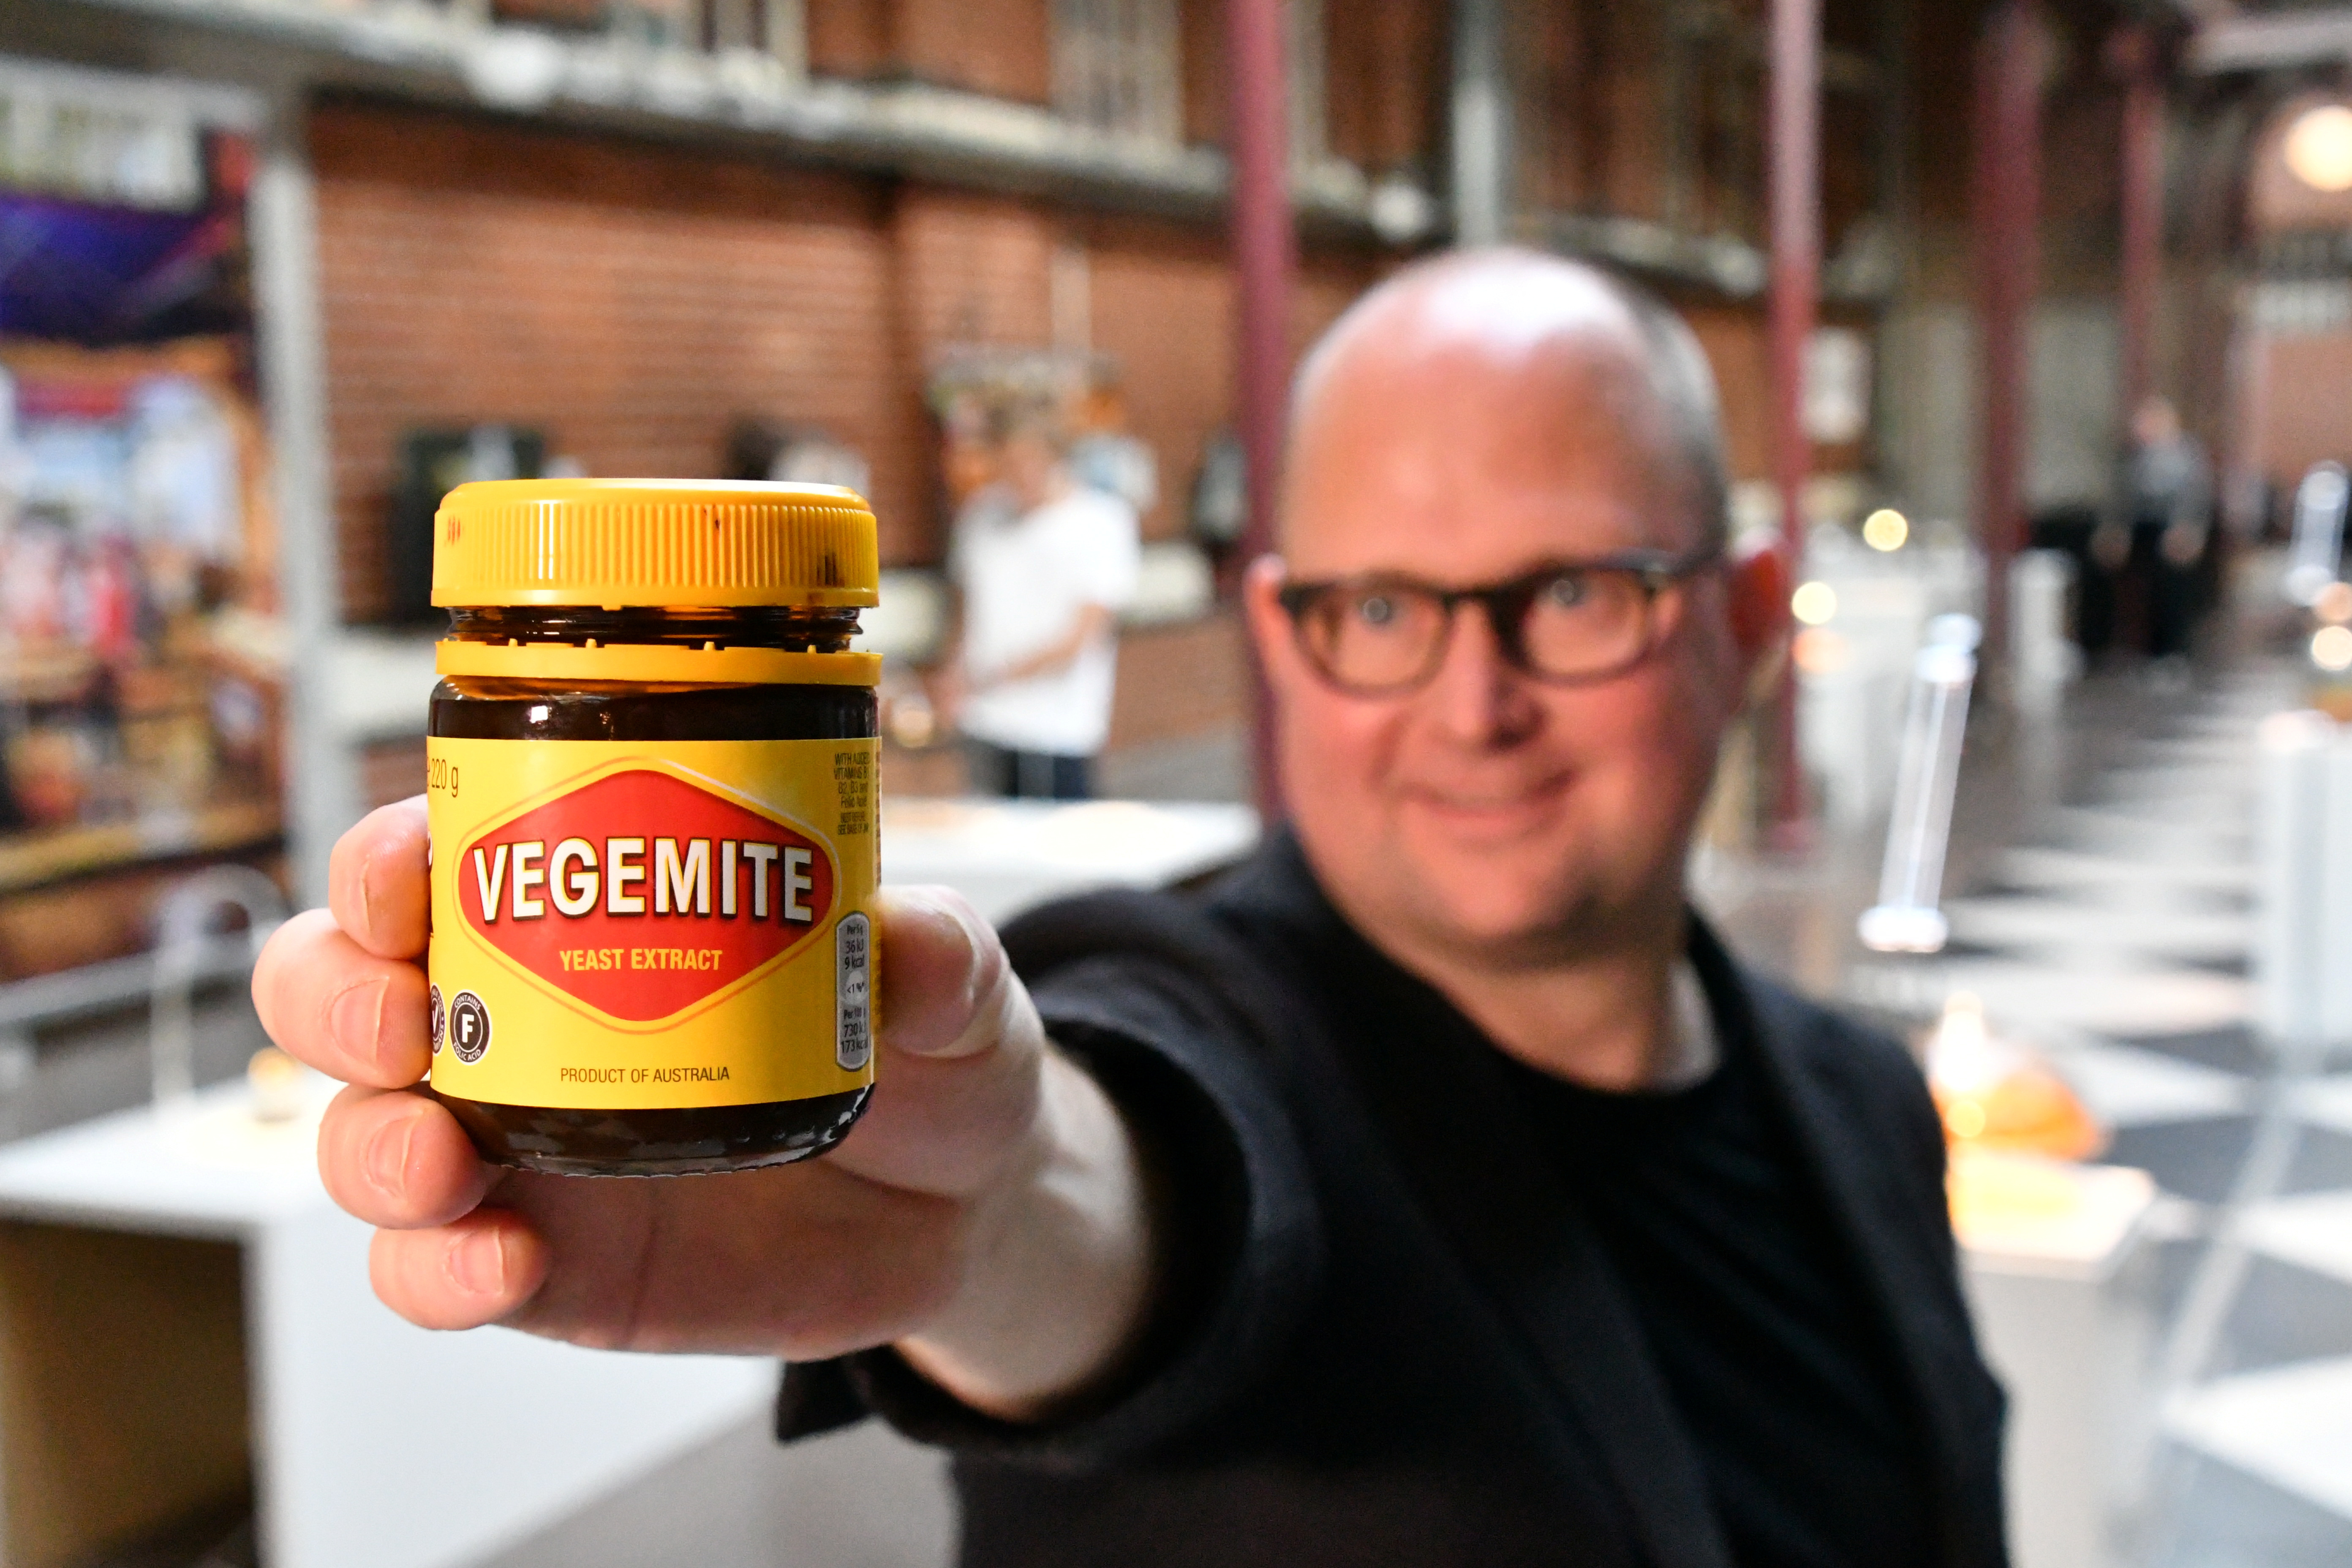 Disgusting Food Museum curator Samuel West shows Australian Vegemite in Malmo